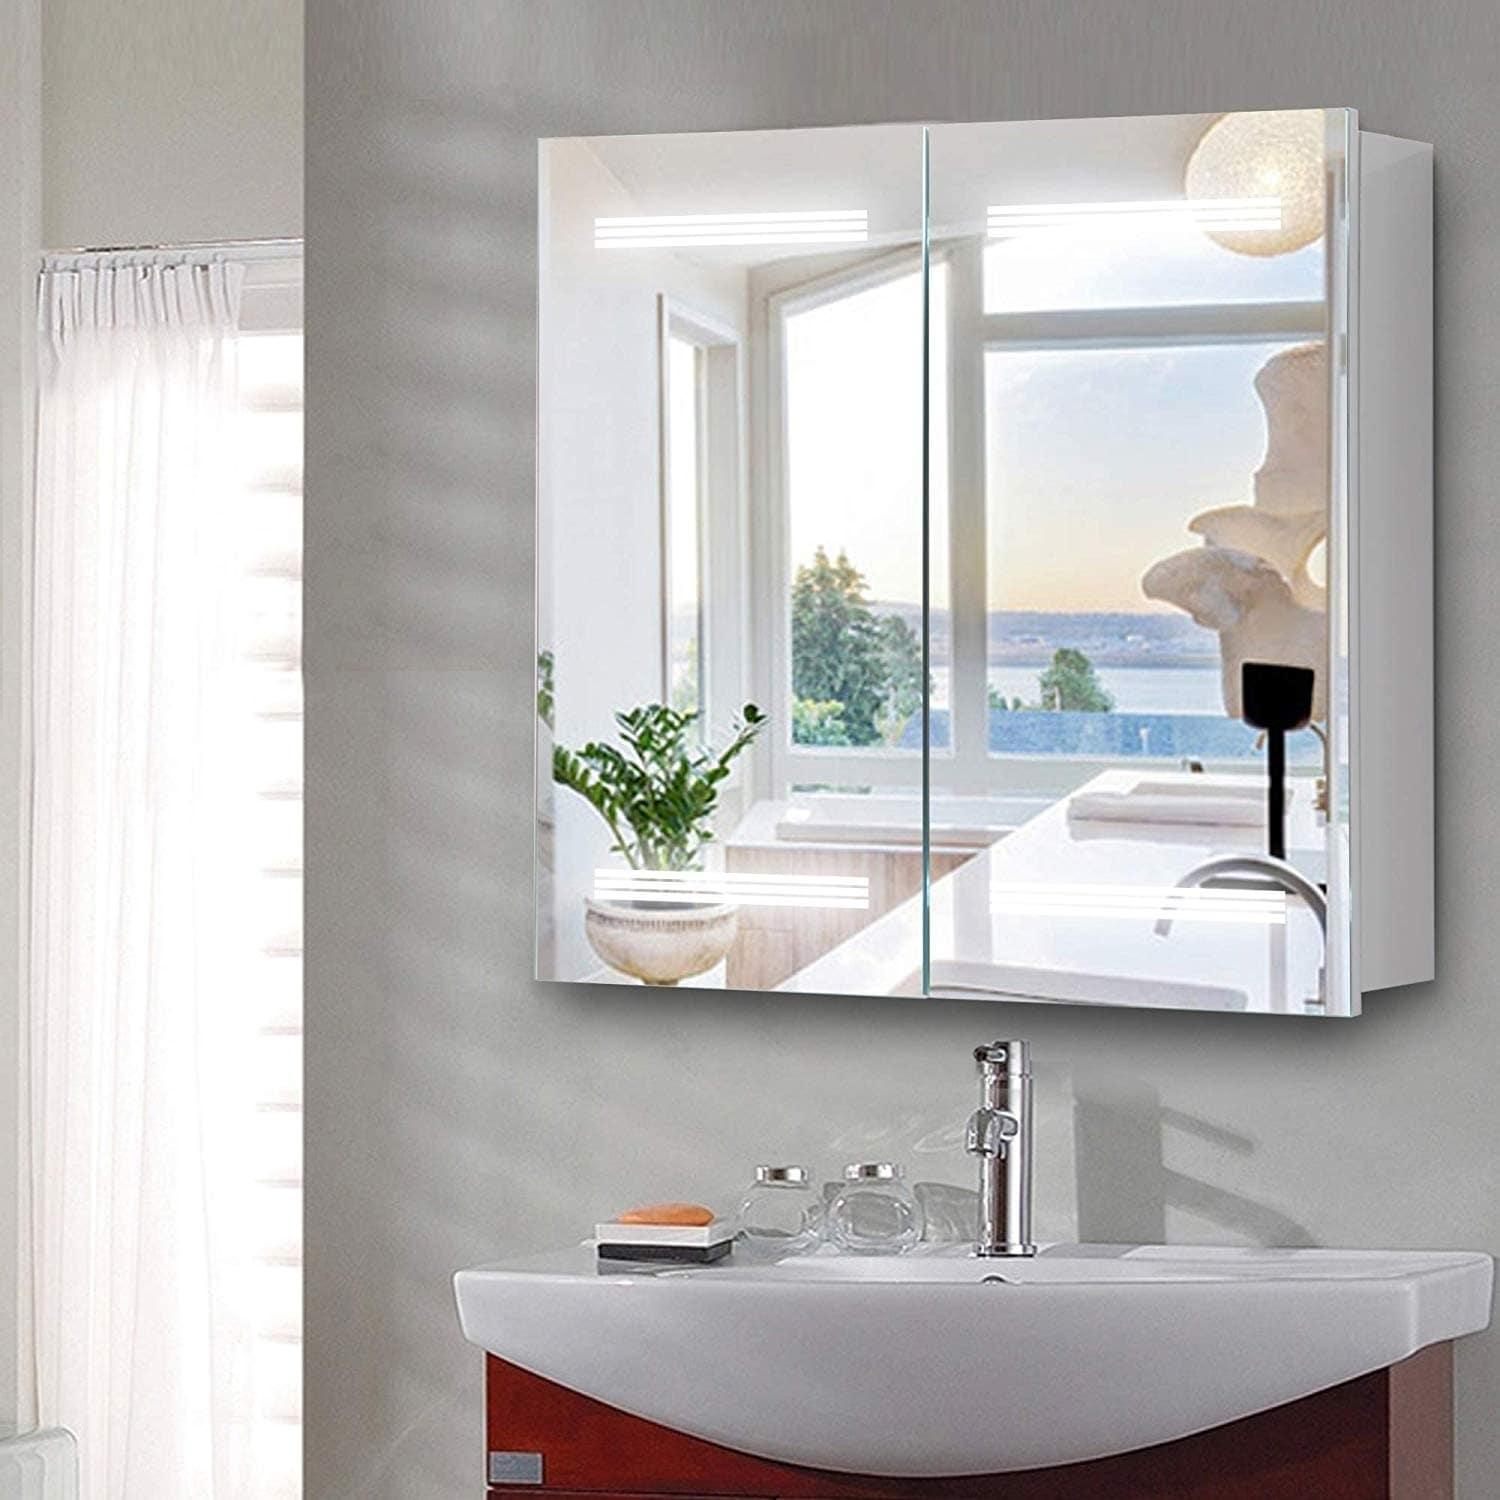 Shop For Vanity Art 26 Inch Rectangle Led Lighted Illuminated Vertical Bathroom Vanity Mirror Wooden Medicine Cabinet With Rock Switch Get Free Shipping On Everything At Overstock Your Online Home Decor Outlet Store Get 5 In Rewards With